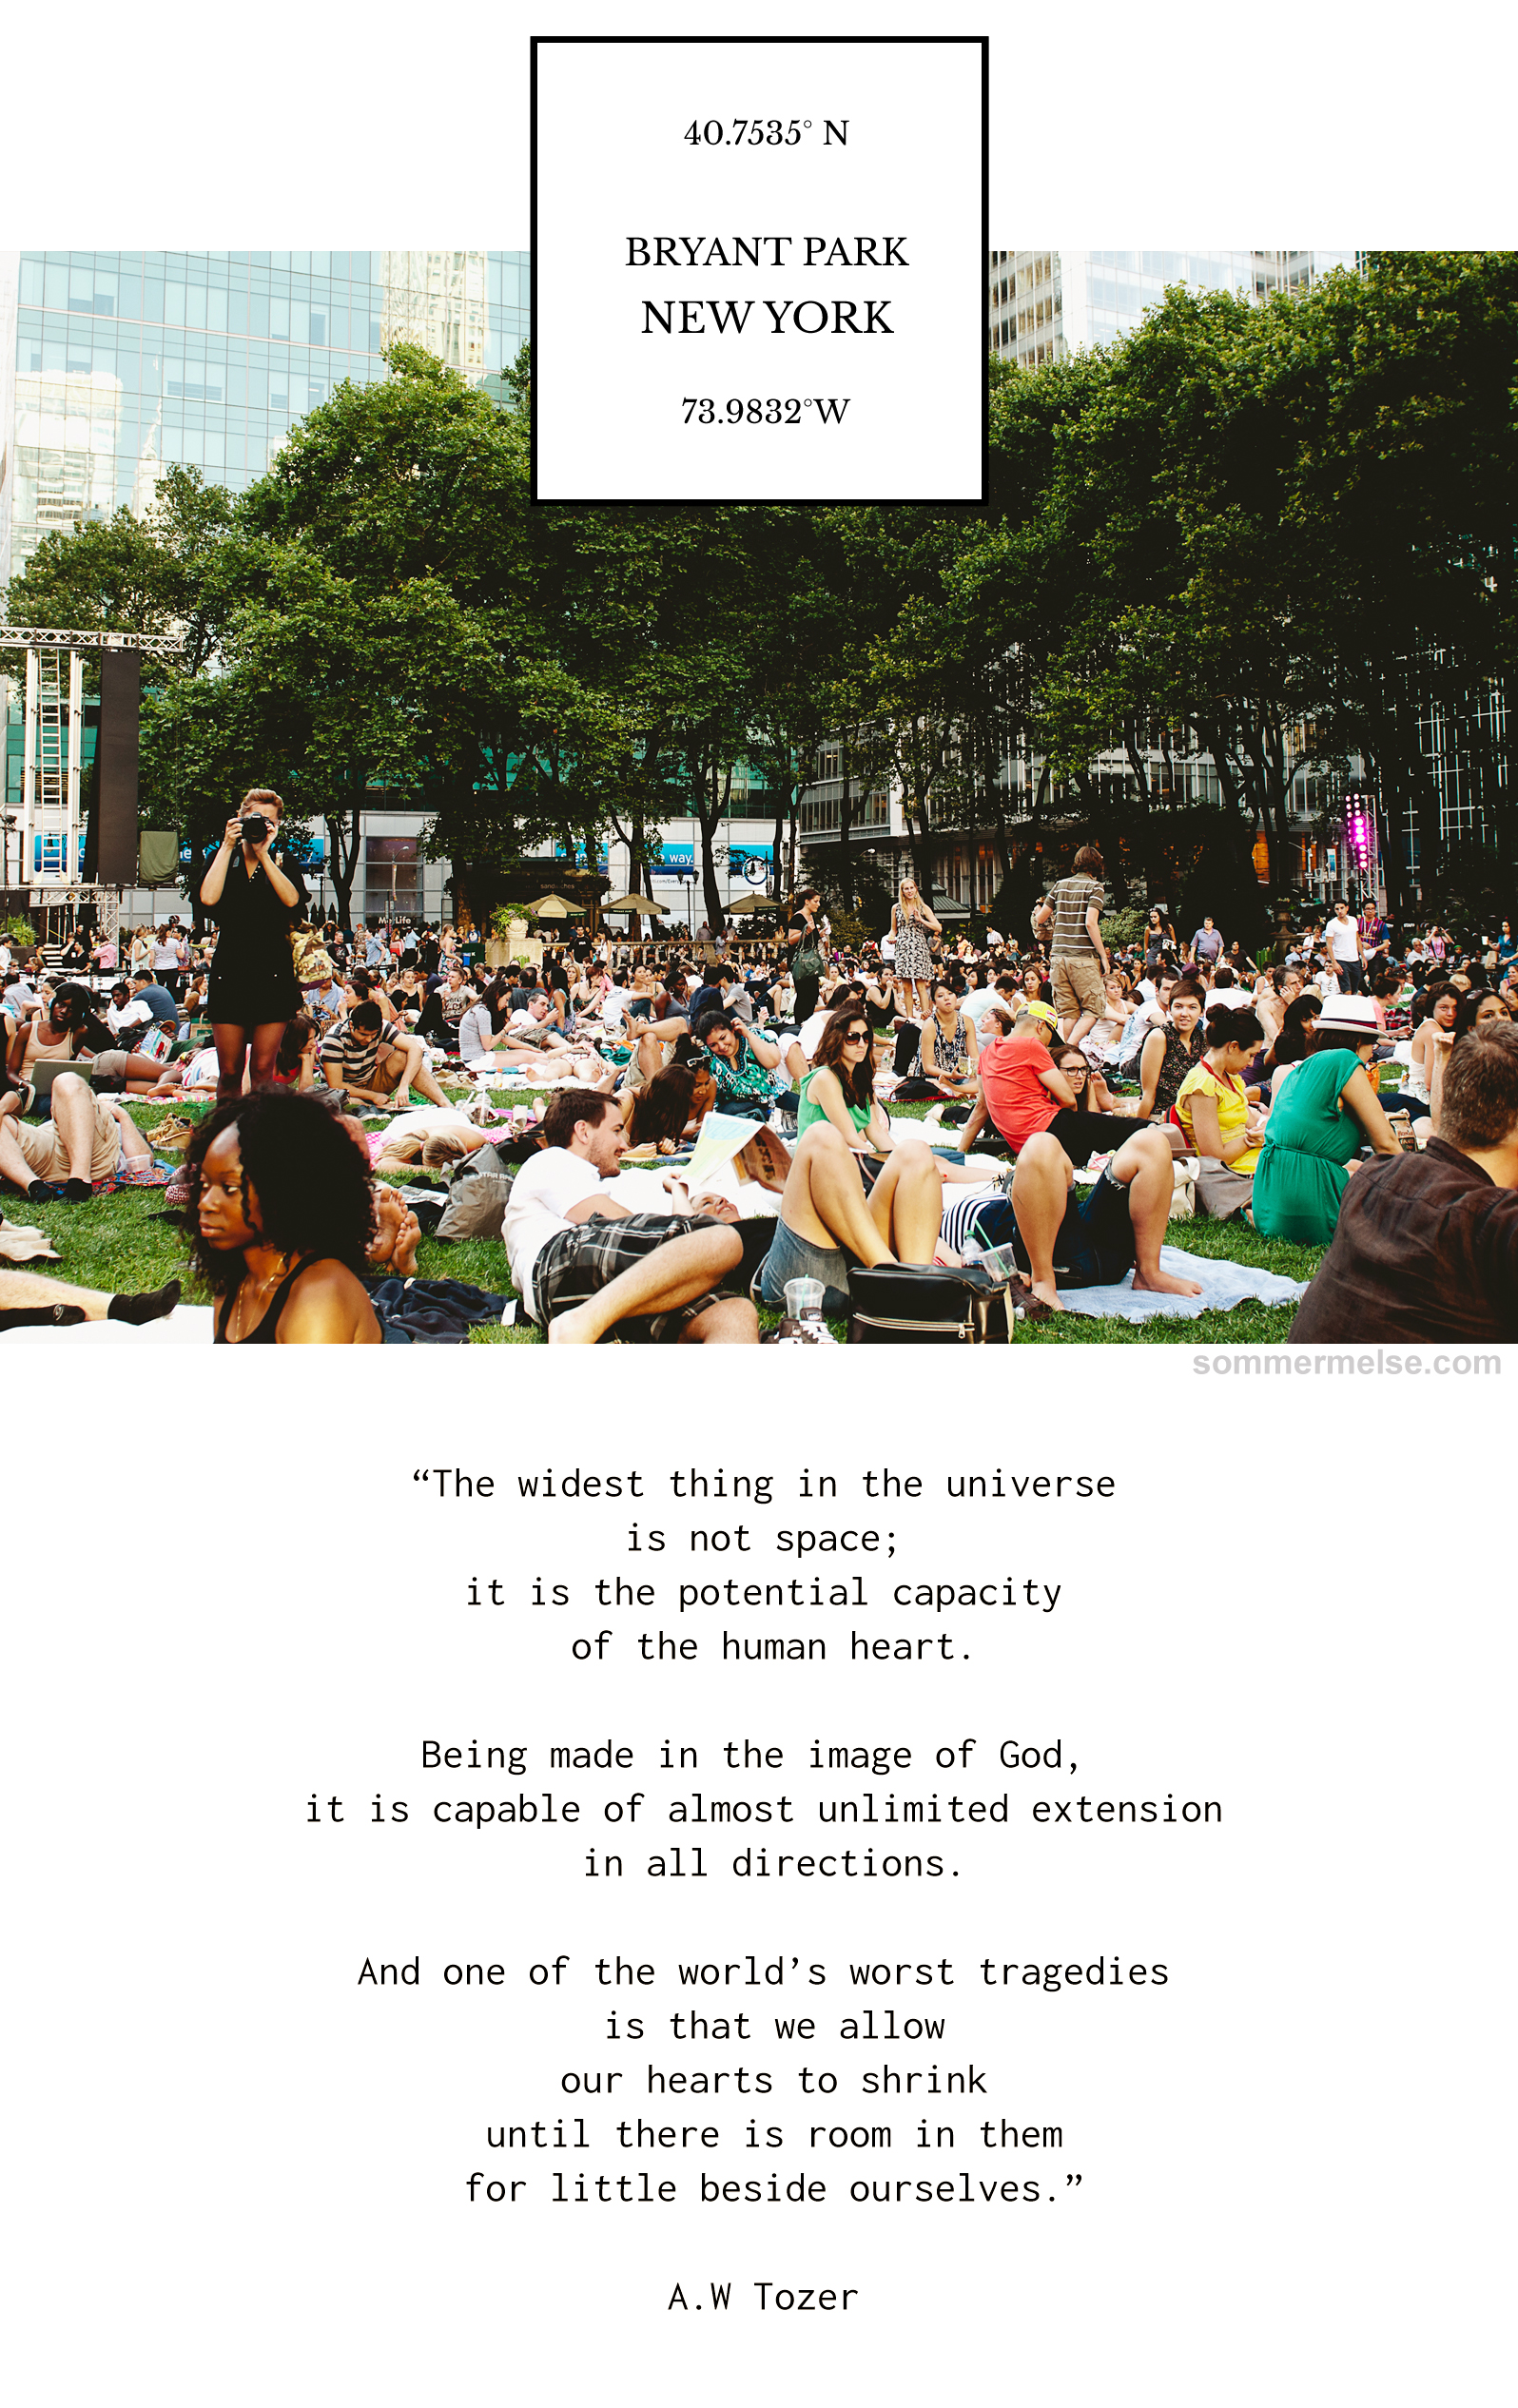 17_finding_wonder_bryant_park_new_york_potential_heart_a_w_tozer